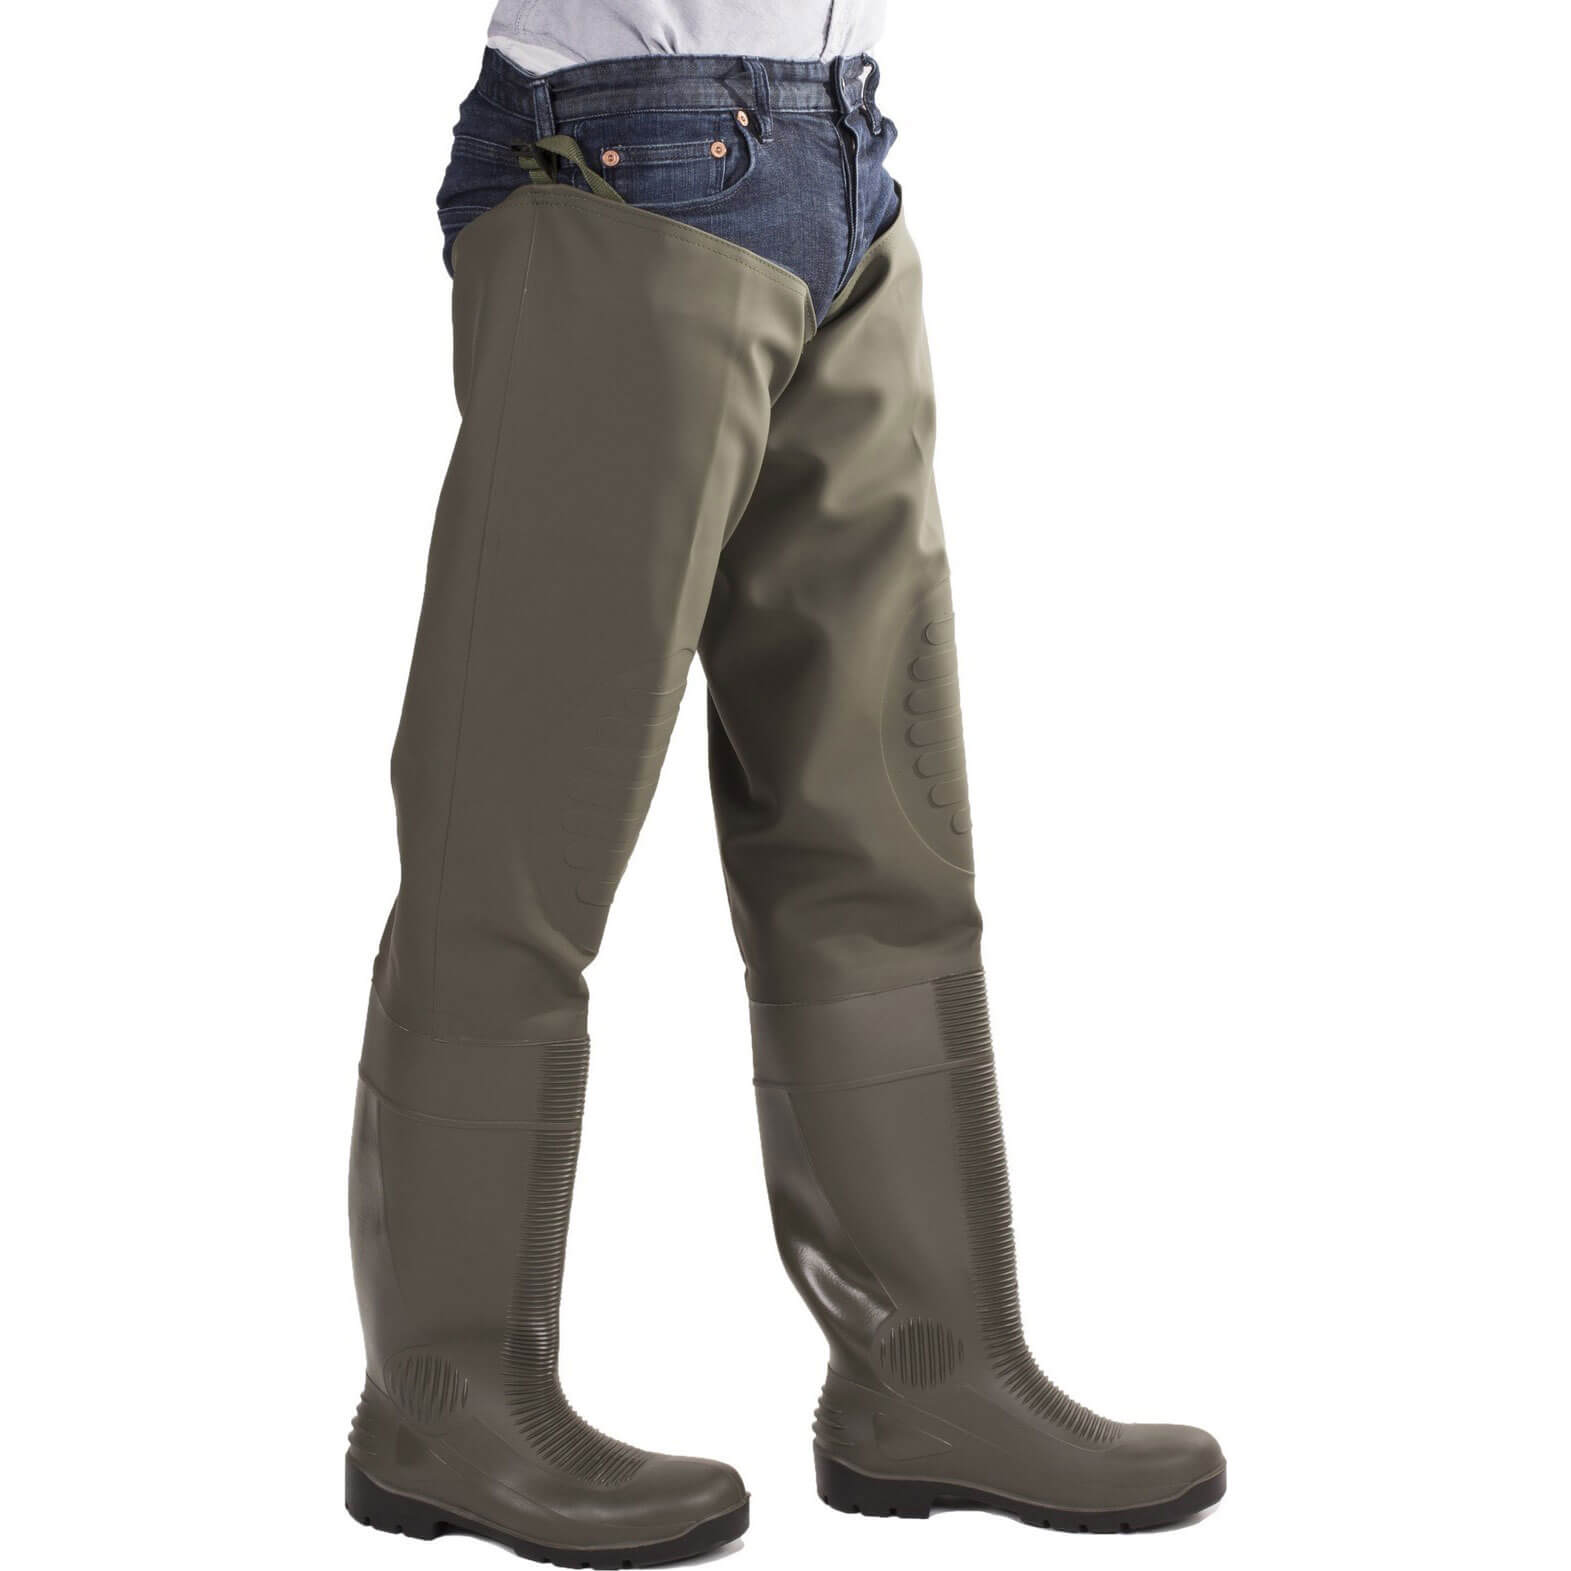 CHEAP Amblers Safety Forth Thigh Safety Wader Green Size 6.5 – Men's Footwear